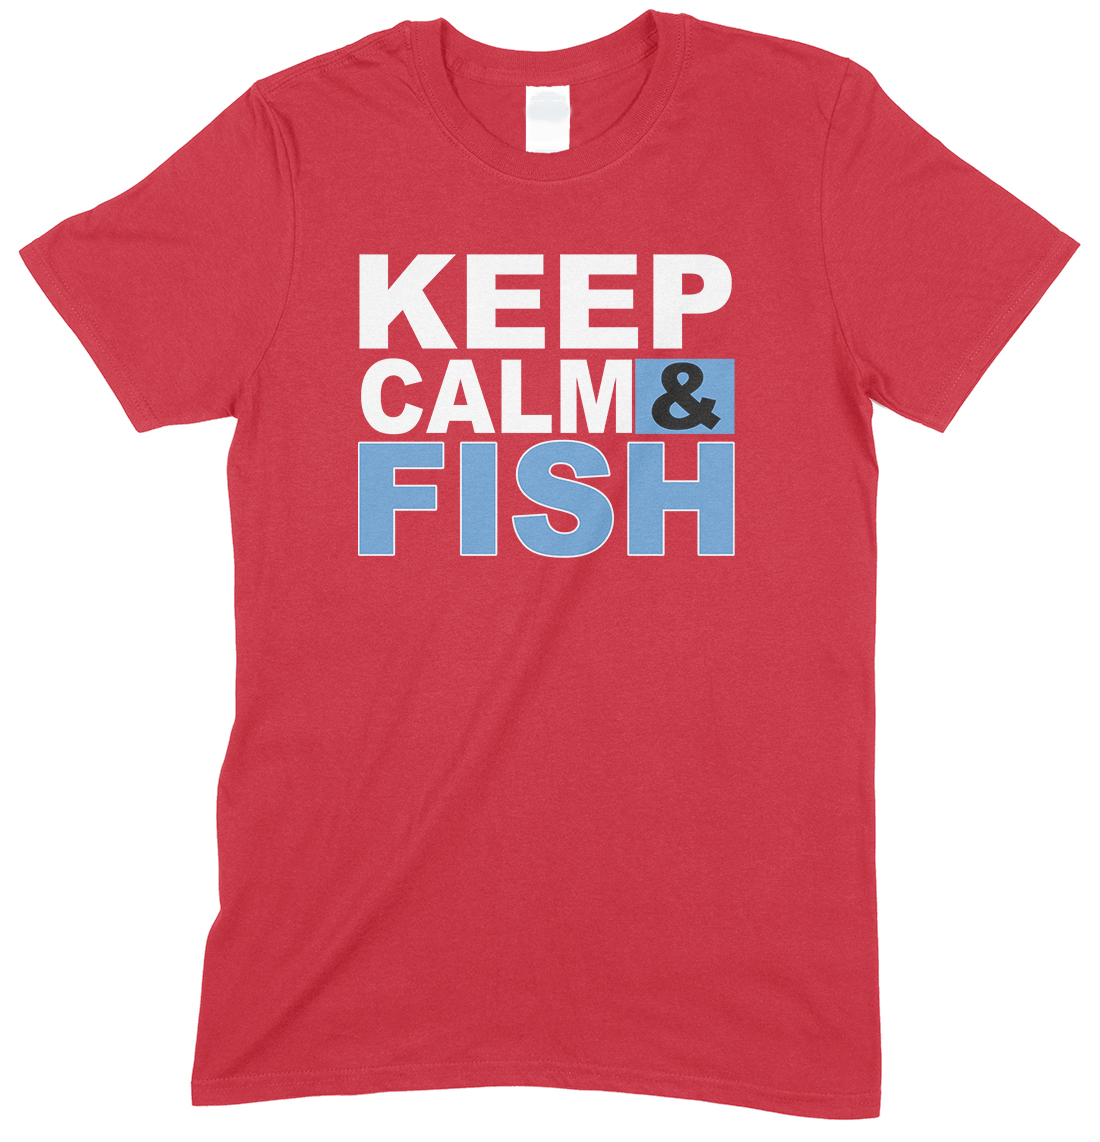 Keep calm & Fish - Child's Unisex Boy- Girl T Shirt